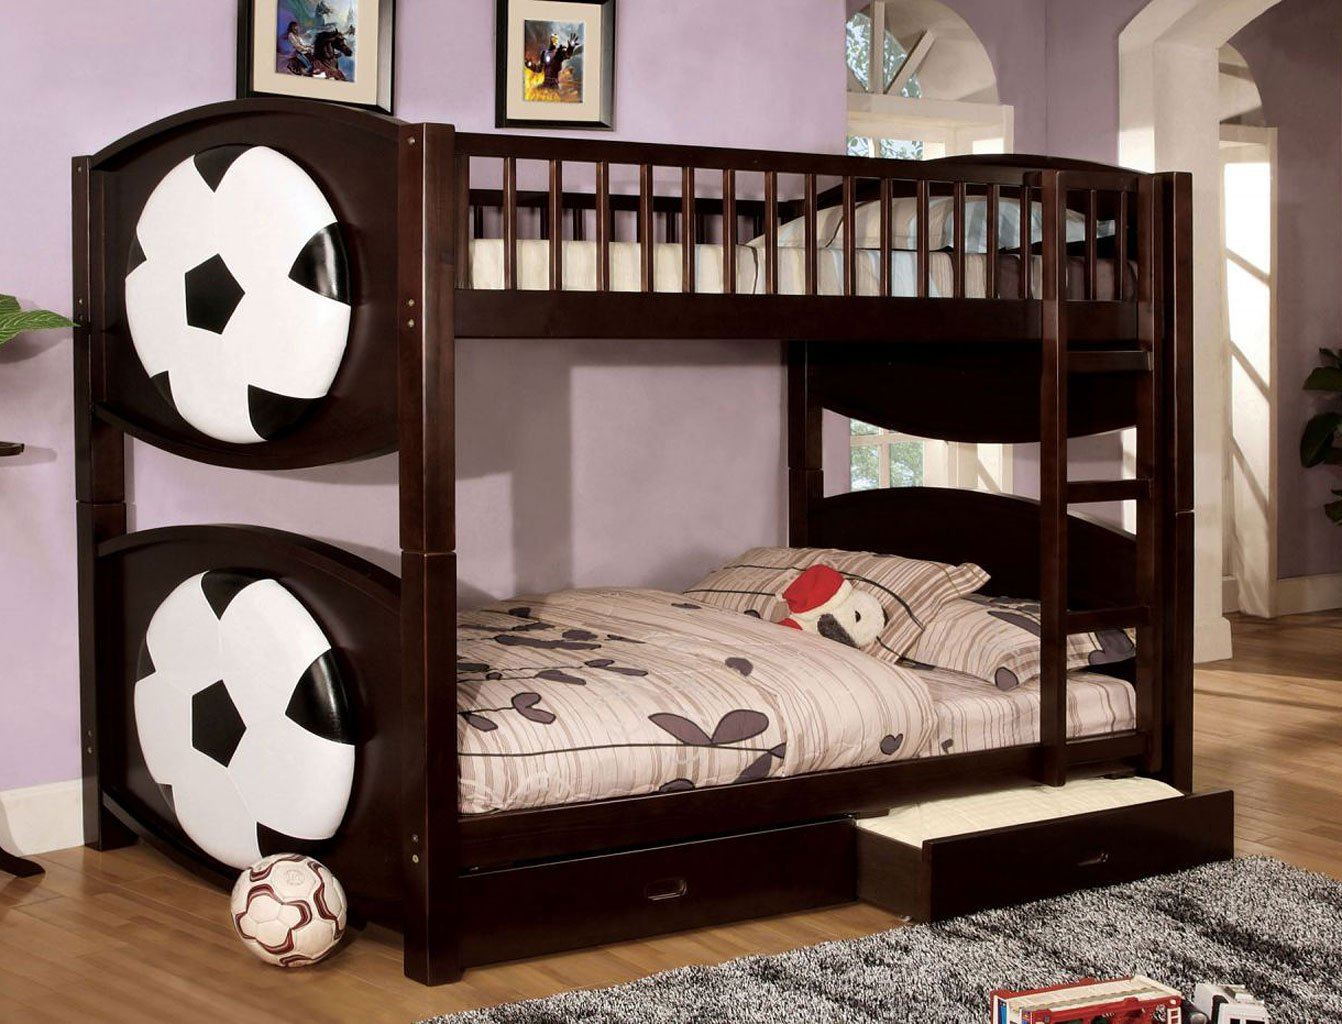 Omnus Bedroom Set W/ Olympic Bunk Bed (Ball Design) By